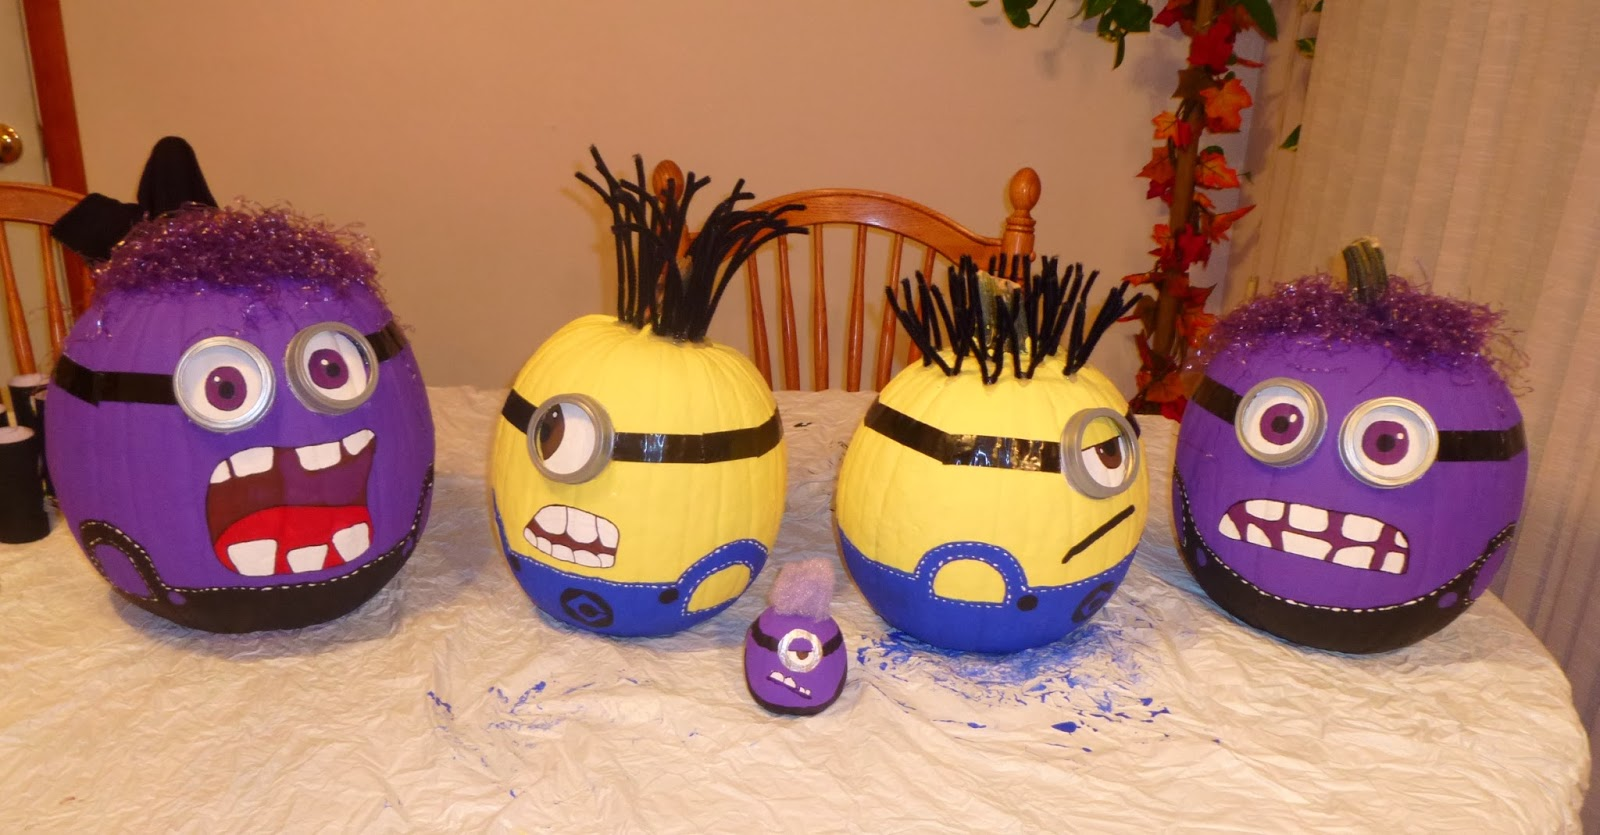 Painted Minion Pumpkins The Beach Bird Boutique Blogs How To Despicable Me 2 Minion